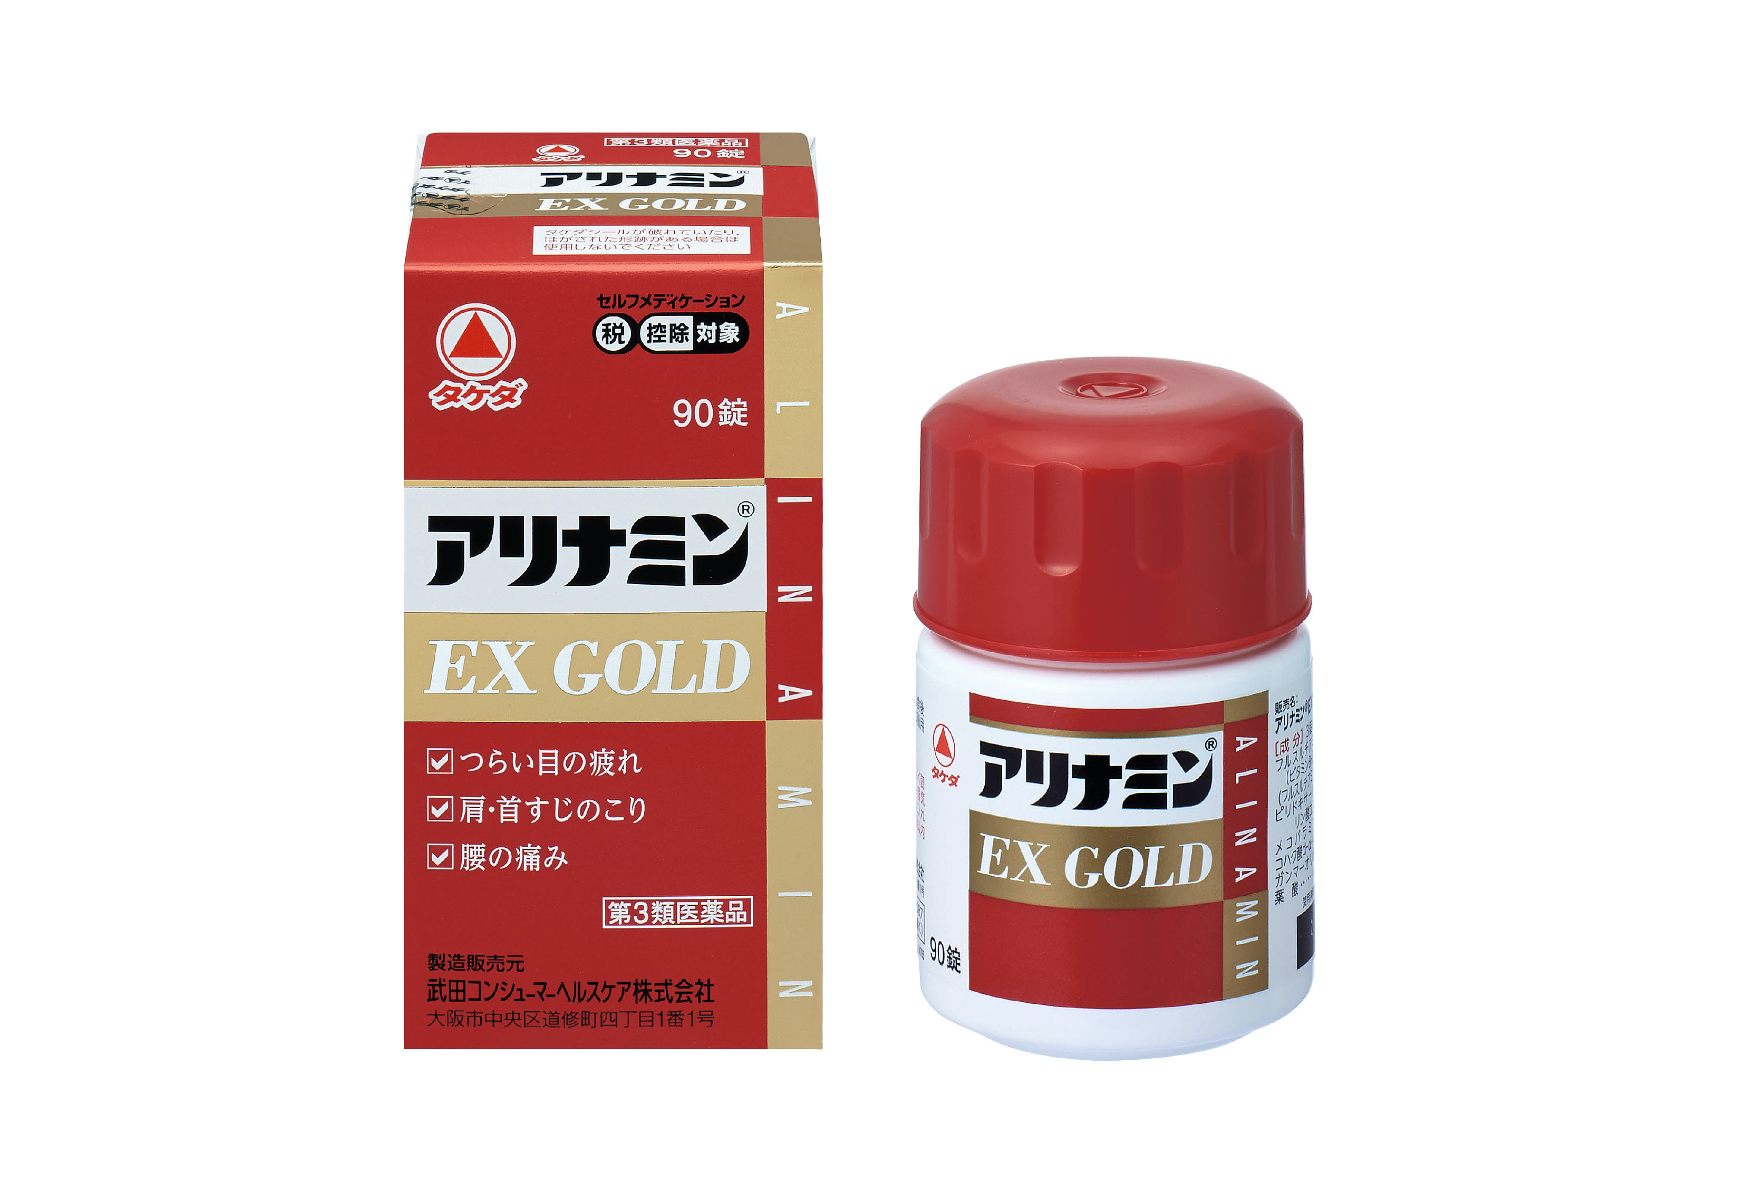 Alinamin EX Gold (Class 3 Pharmaceuticals), For problems with nape, hip, shoulder, or eye fatigue.